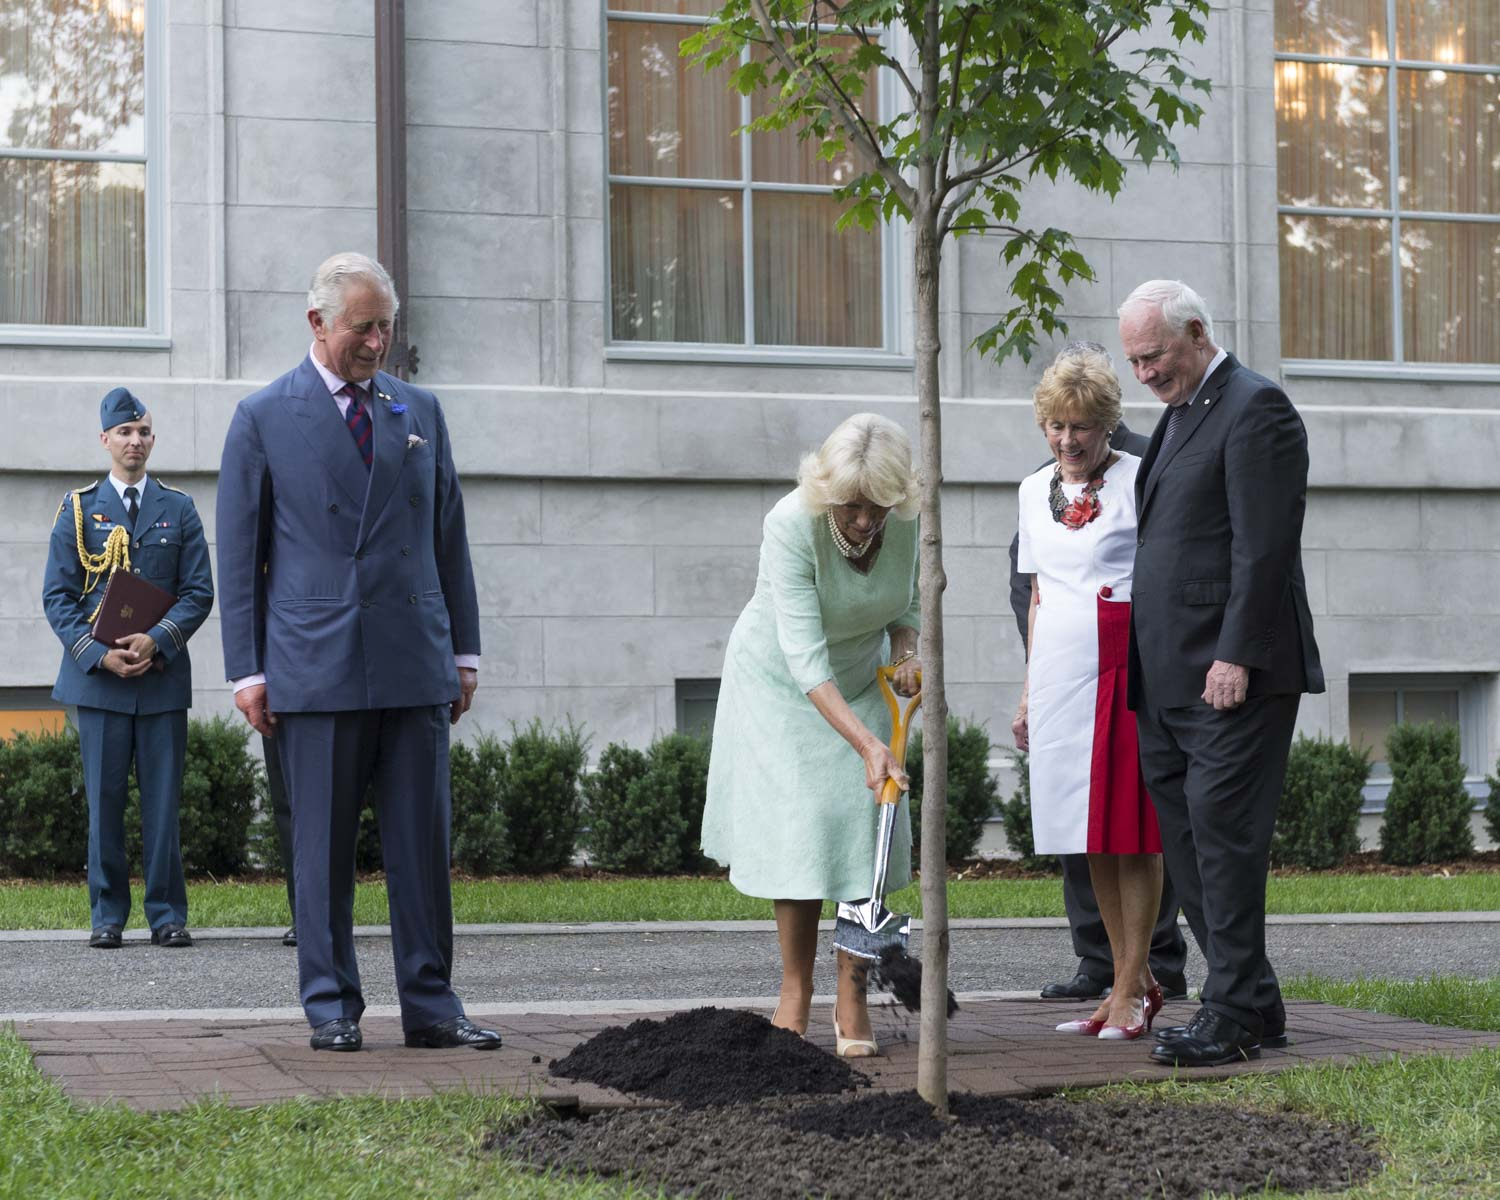 The tree is located in the Royal grove area of Rideau Hall, near the residence. It is located next to the tree planted by Her Majesty Queen Elizabeth II in 2010. Since 1939, Her Majesty The Queen and members of the Royal Family have planted 17 ceremonial trees on the grounds of Rideau Hall.